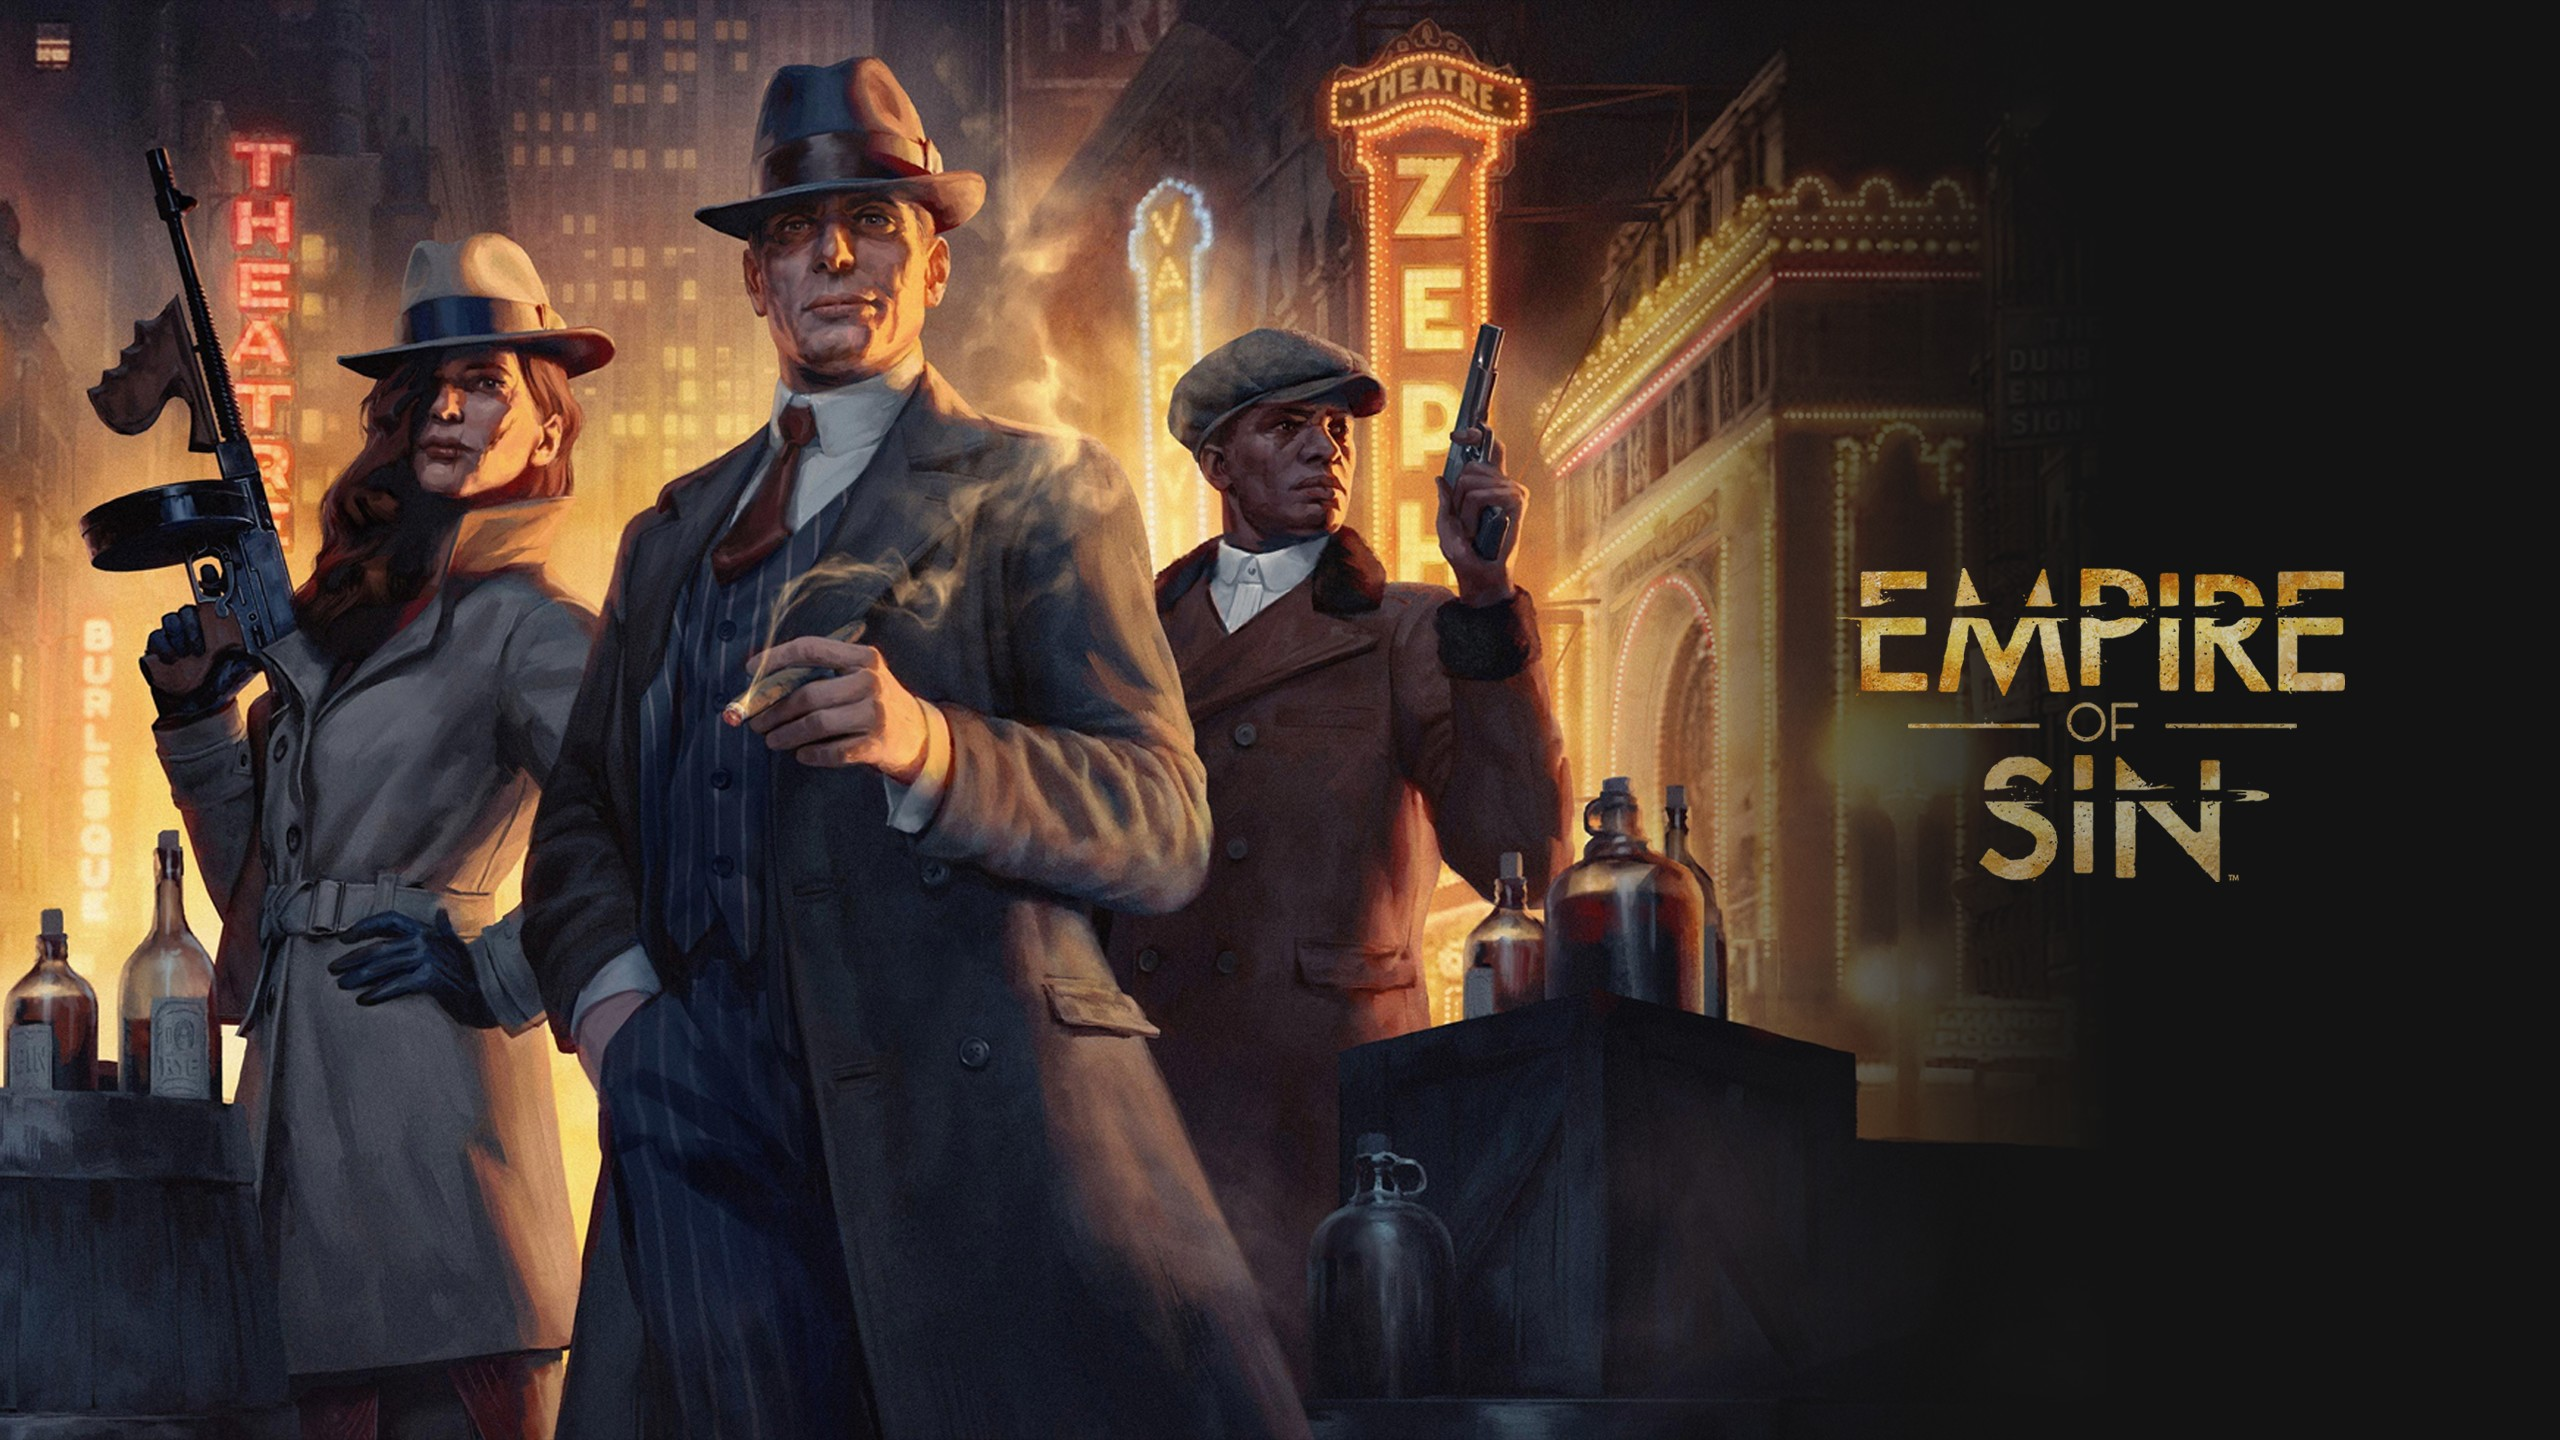 Games that RocketBrush Studio contributed to – Empire of Sin